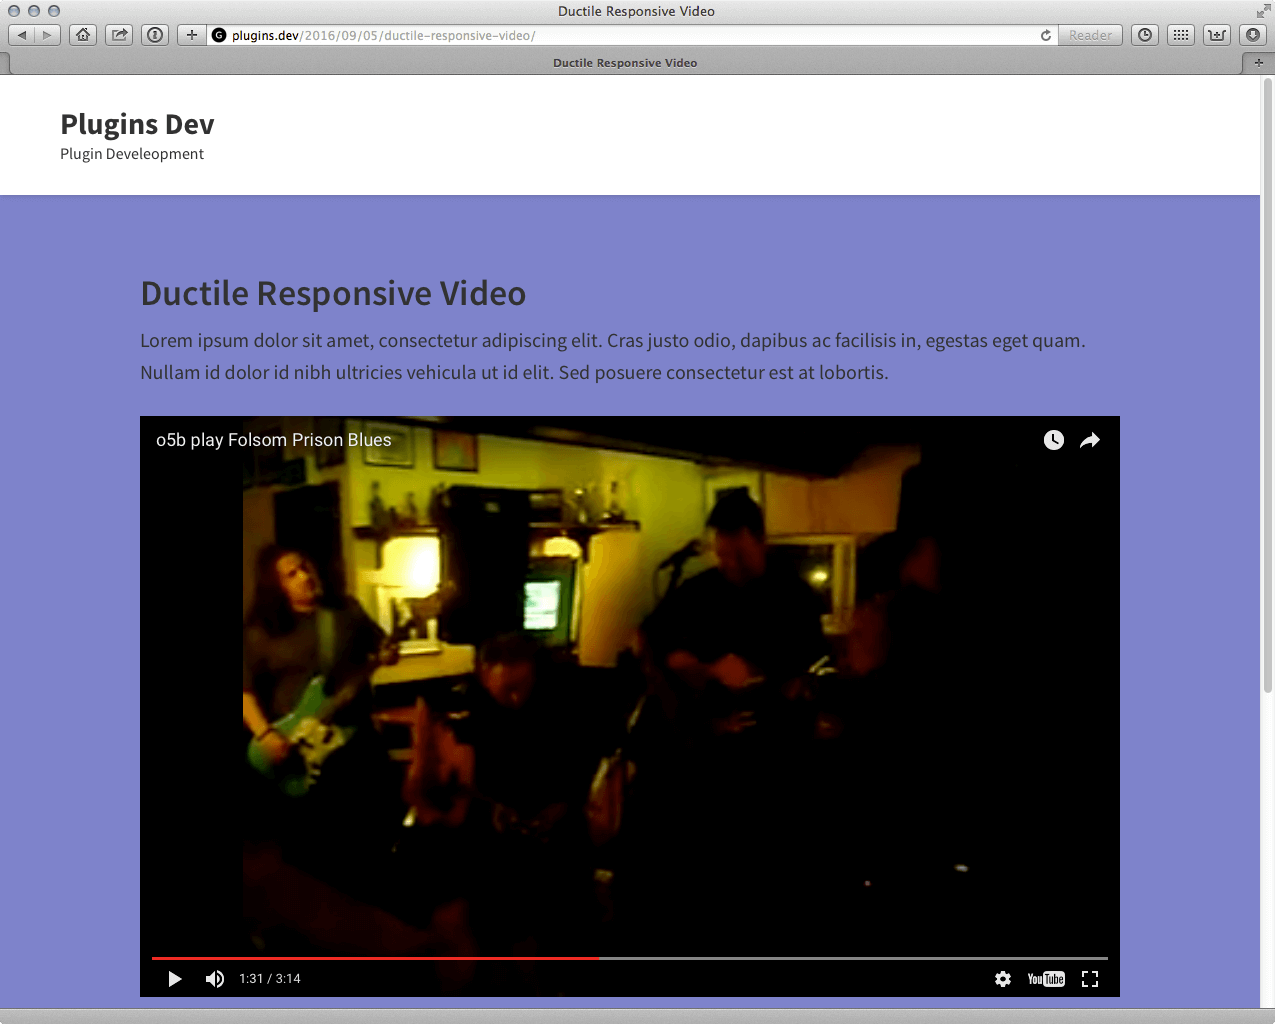 ductile-responsive-video screenshot 1